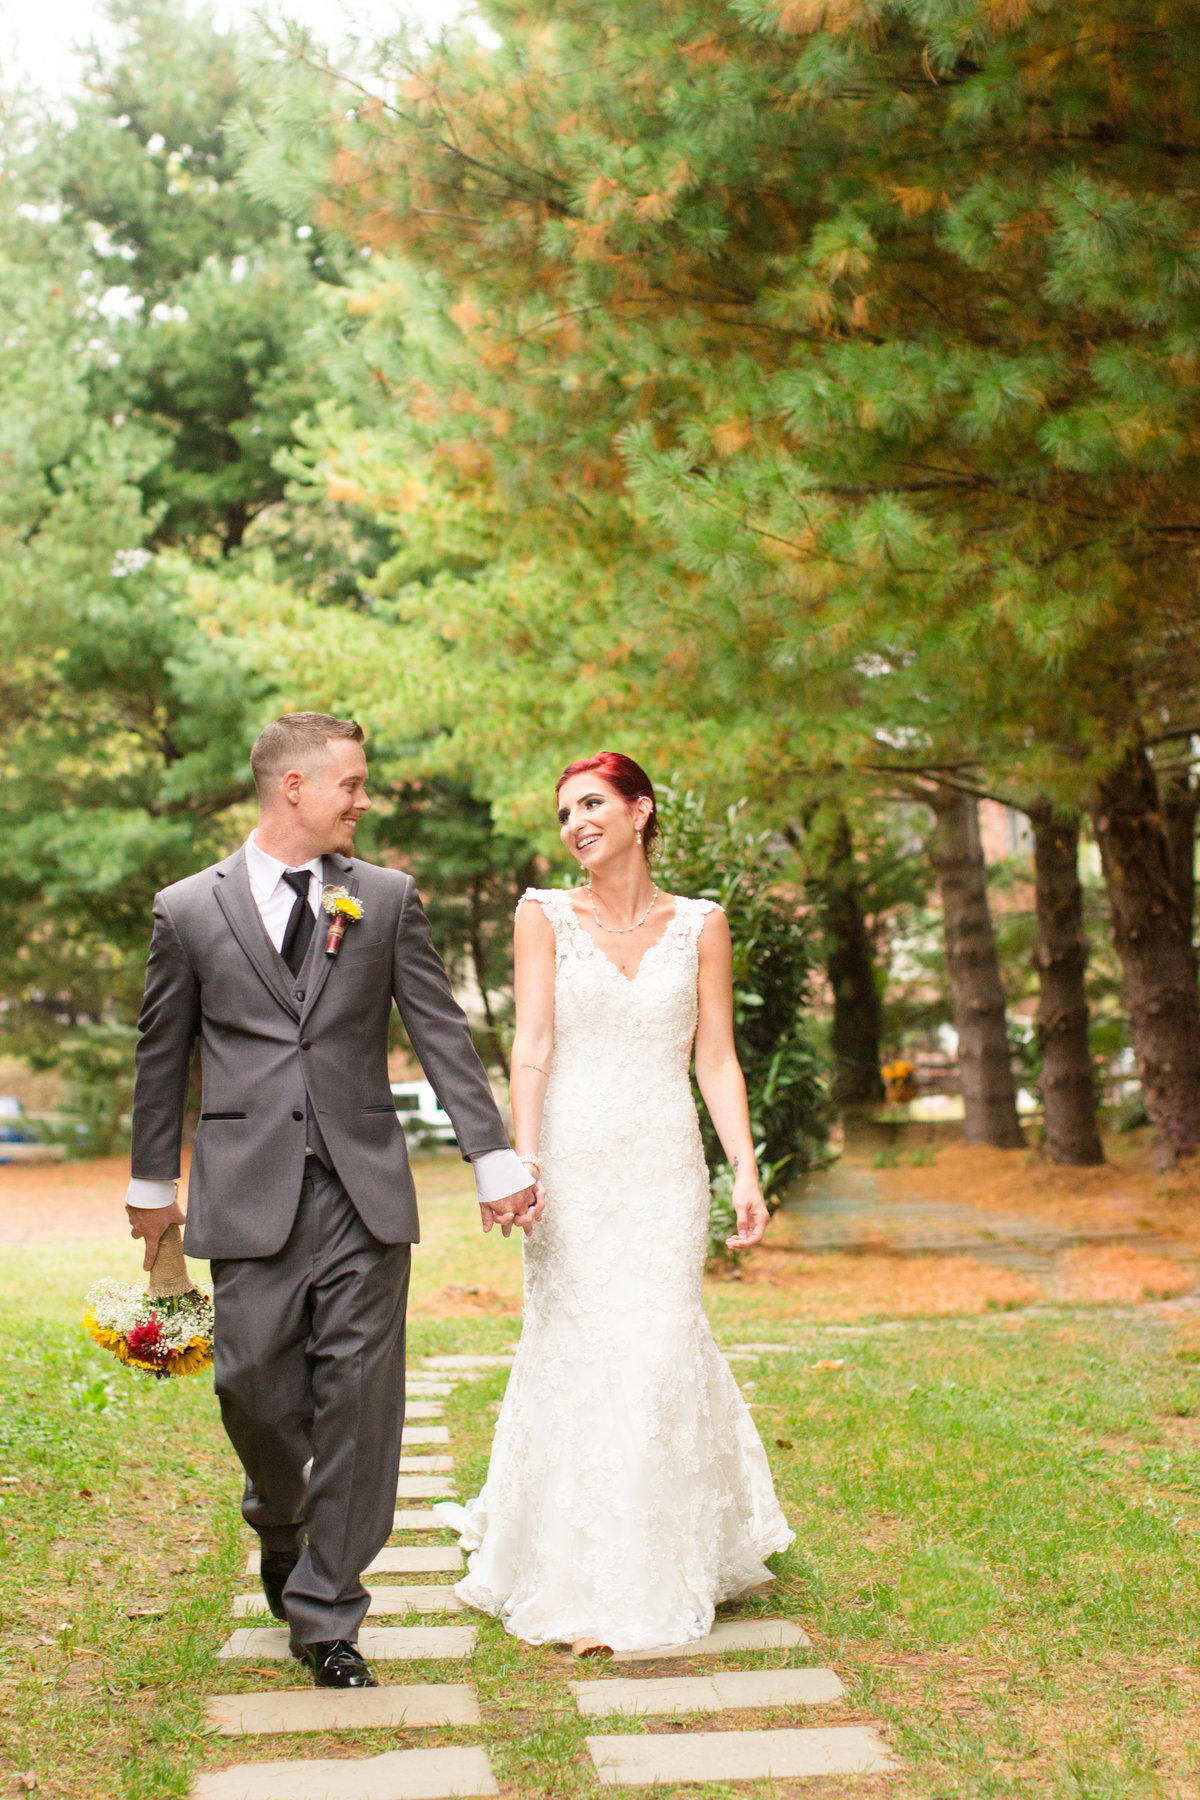 Marie Hamilton photography, Marie Hamilton, Local wedding photographer, Wedding photographer near me, Wedding photographer, Best wedding photographers, Wedding photography, Engagement photography, Engagement photographer, Maternity photography, Family photography, Senior photography, Photography Education, Virginia photography education, Virginia wedding photographer, Virginia wedding photography, Stafford wedding photographer, Stafford wedding, Stafford Virginia wedding photographer, Fredericksburg wedding, Fredericksburg wedding photographer, Northern Virginia wedding photographer, Timeless, Classic, Romantic, Destination wedding, Photography, Engagement,  Oak creek farm wedding, The Glasgow farm wedding, Whitehall Estate wedding, Pippin Hill Farm wedding, Lewis Ginter Botanical garden wedding, Top of the town wedding, Market at Grelen wedding, The Silk Mill wedding, Libby Hill wedding, Clyde's Willow Creek farm wedding, Richmond wedding photographer, Rva wedding photographer, Rockhill plantation house wedding, Moon Valley wedding, Glen Garden wedding, Hartwood House wedding, Angelwood Inn wedding, Eden Try wedding, Arbor Haven wedding, Sweeney Barn wedding, Hartwood House wedding, The Ospreys at Belmont Bay wedding, Great Marsh Estate wedding, The Inn at Vint Hill wedding, Brandy Hill Farm wedding, Morais Vineyards & winery wedding, Fredericksburg Square wedding, Sunset Crest Manor, Rixey Manor, Kenmore Inn, Greenock Manor, Belle Grove Plantation, Bristow Manor wedding, Wolftrap Farm, Mount Ida Farm, Airlie, Poplar Springs Manor, Earlyhouse, Shadow Creek Weddings & Events, Madison at the Mill, Rust Manor House, Top of the Town, Stone Tower Winery, The Tides Inn, Veritas Vineyard, The Omni Homestead Resort, Berry Hill Resort, Pippin Hill Farm & Vineyards, Tuckahoe Plantation, Cousiac Manor, Early Mountain Vineyard, The Retreat at Cool spring, Big Spring Farm, Potomac Point Winery and Vineyard, Verulam Farm, Oatlands Historic House, Barn at Edgewood Farm, Walden Hall, Dover Hall Estate, Hermitage Hill Farm, Clifton Inn, Blue Hill Farm, Salamander Resort & spa, Lansdowne Resort wedding, Keswick farm wedding, Castle Hill wedding